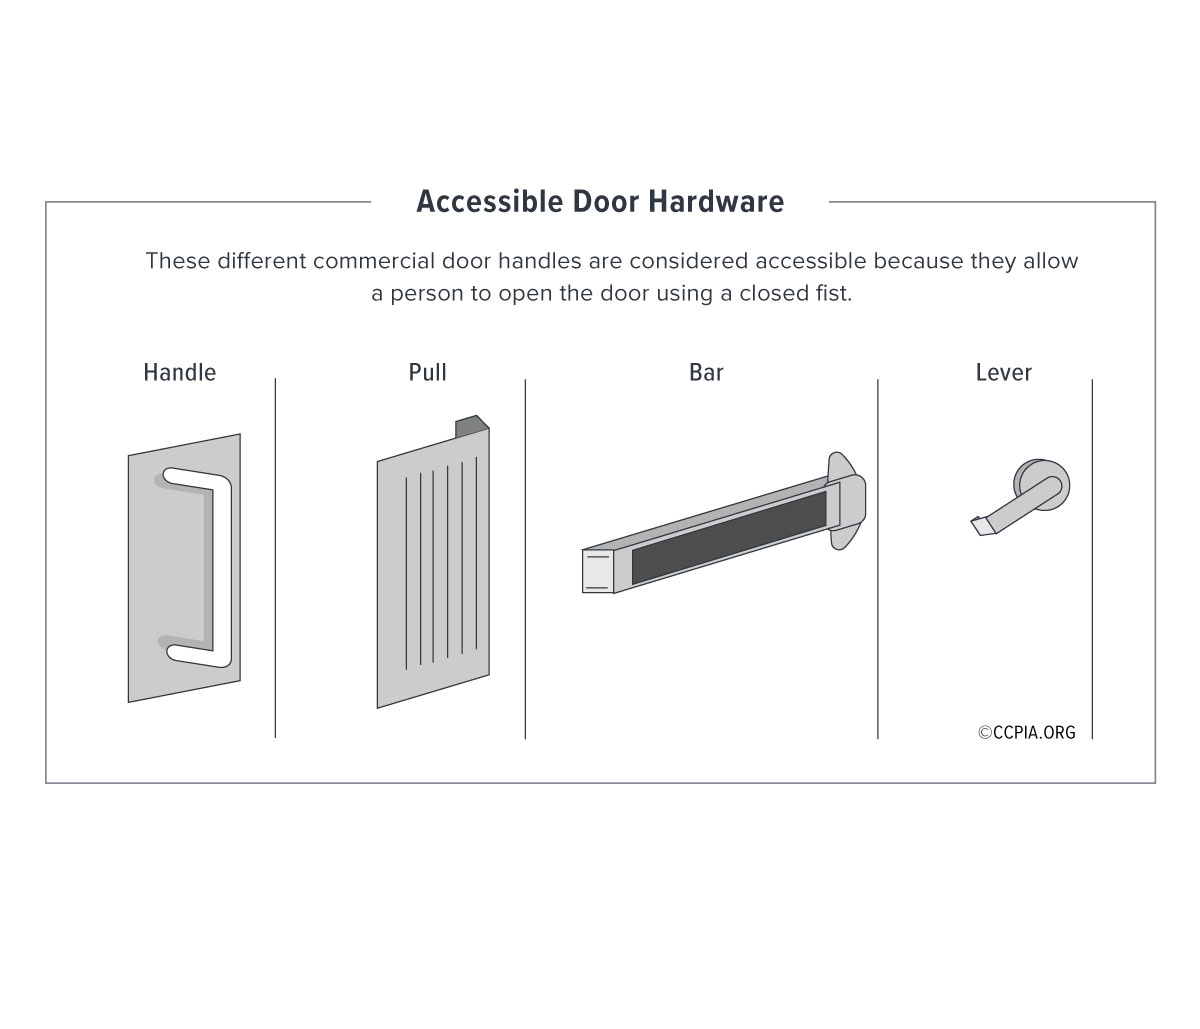 Accessible door hardware for public accommodations and commercial facilities.